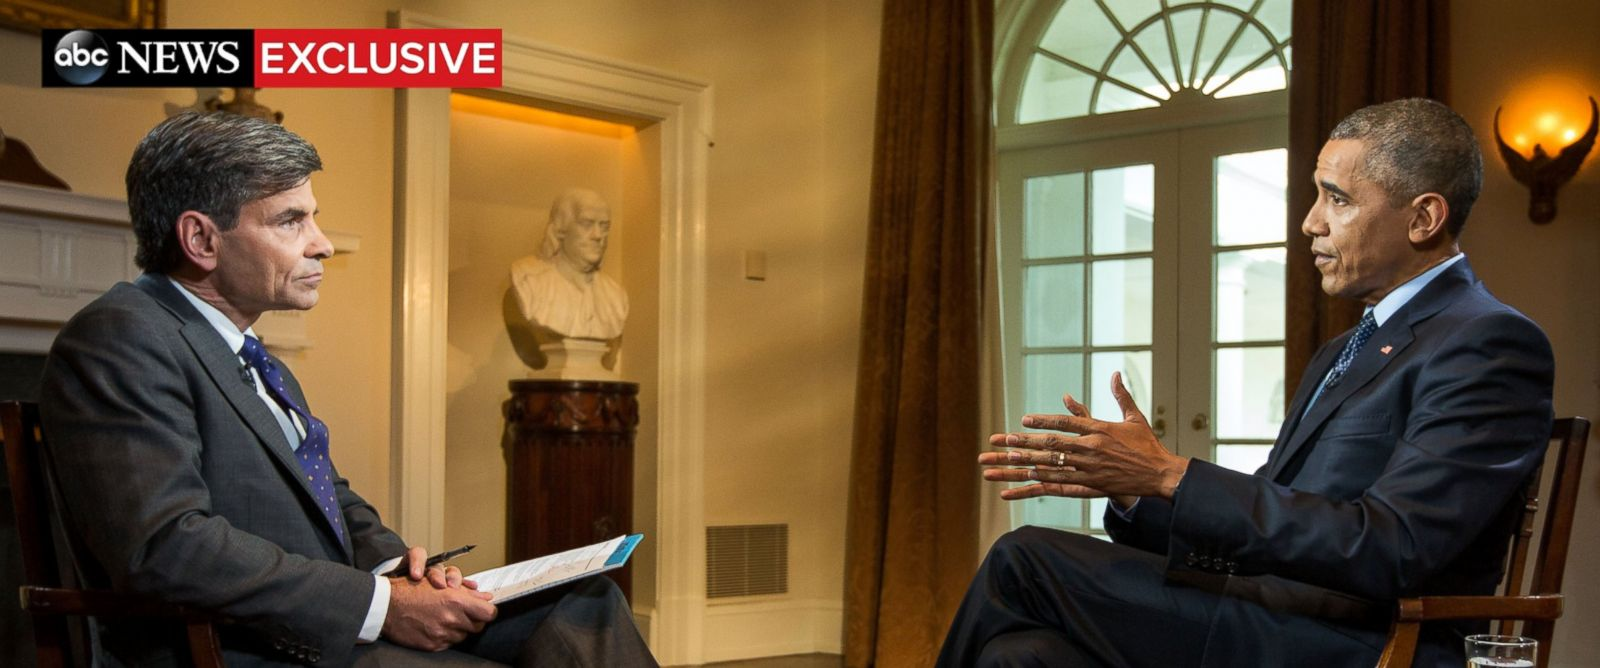 PHOTO: ABC News chief anchor George Stephanopoulos interviews President Barack Obama at the White House on November 12, 2015.